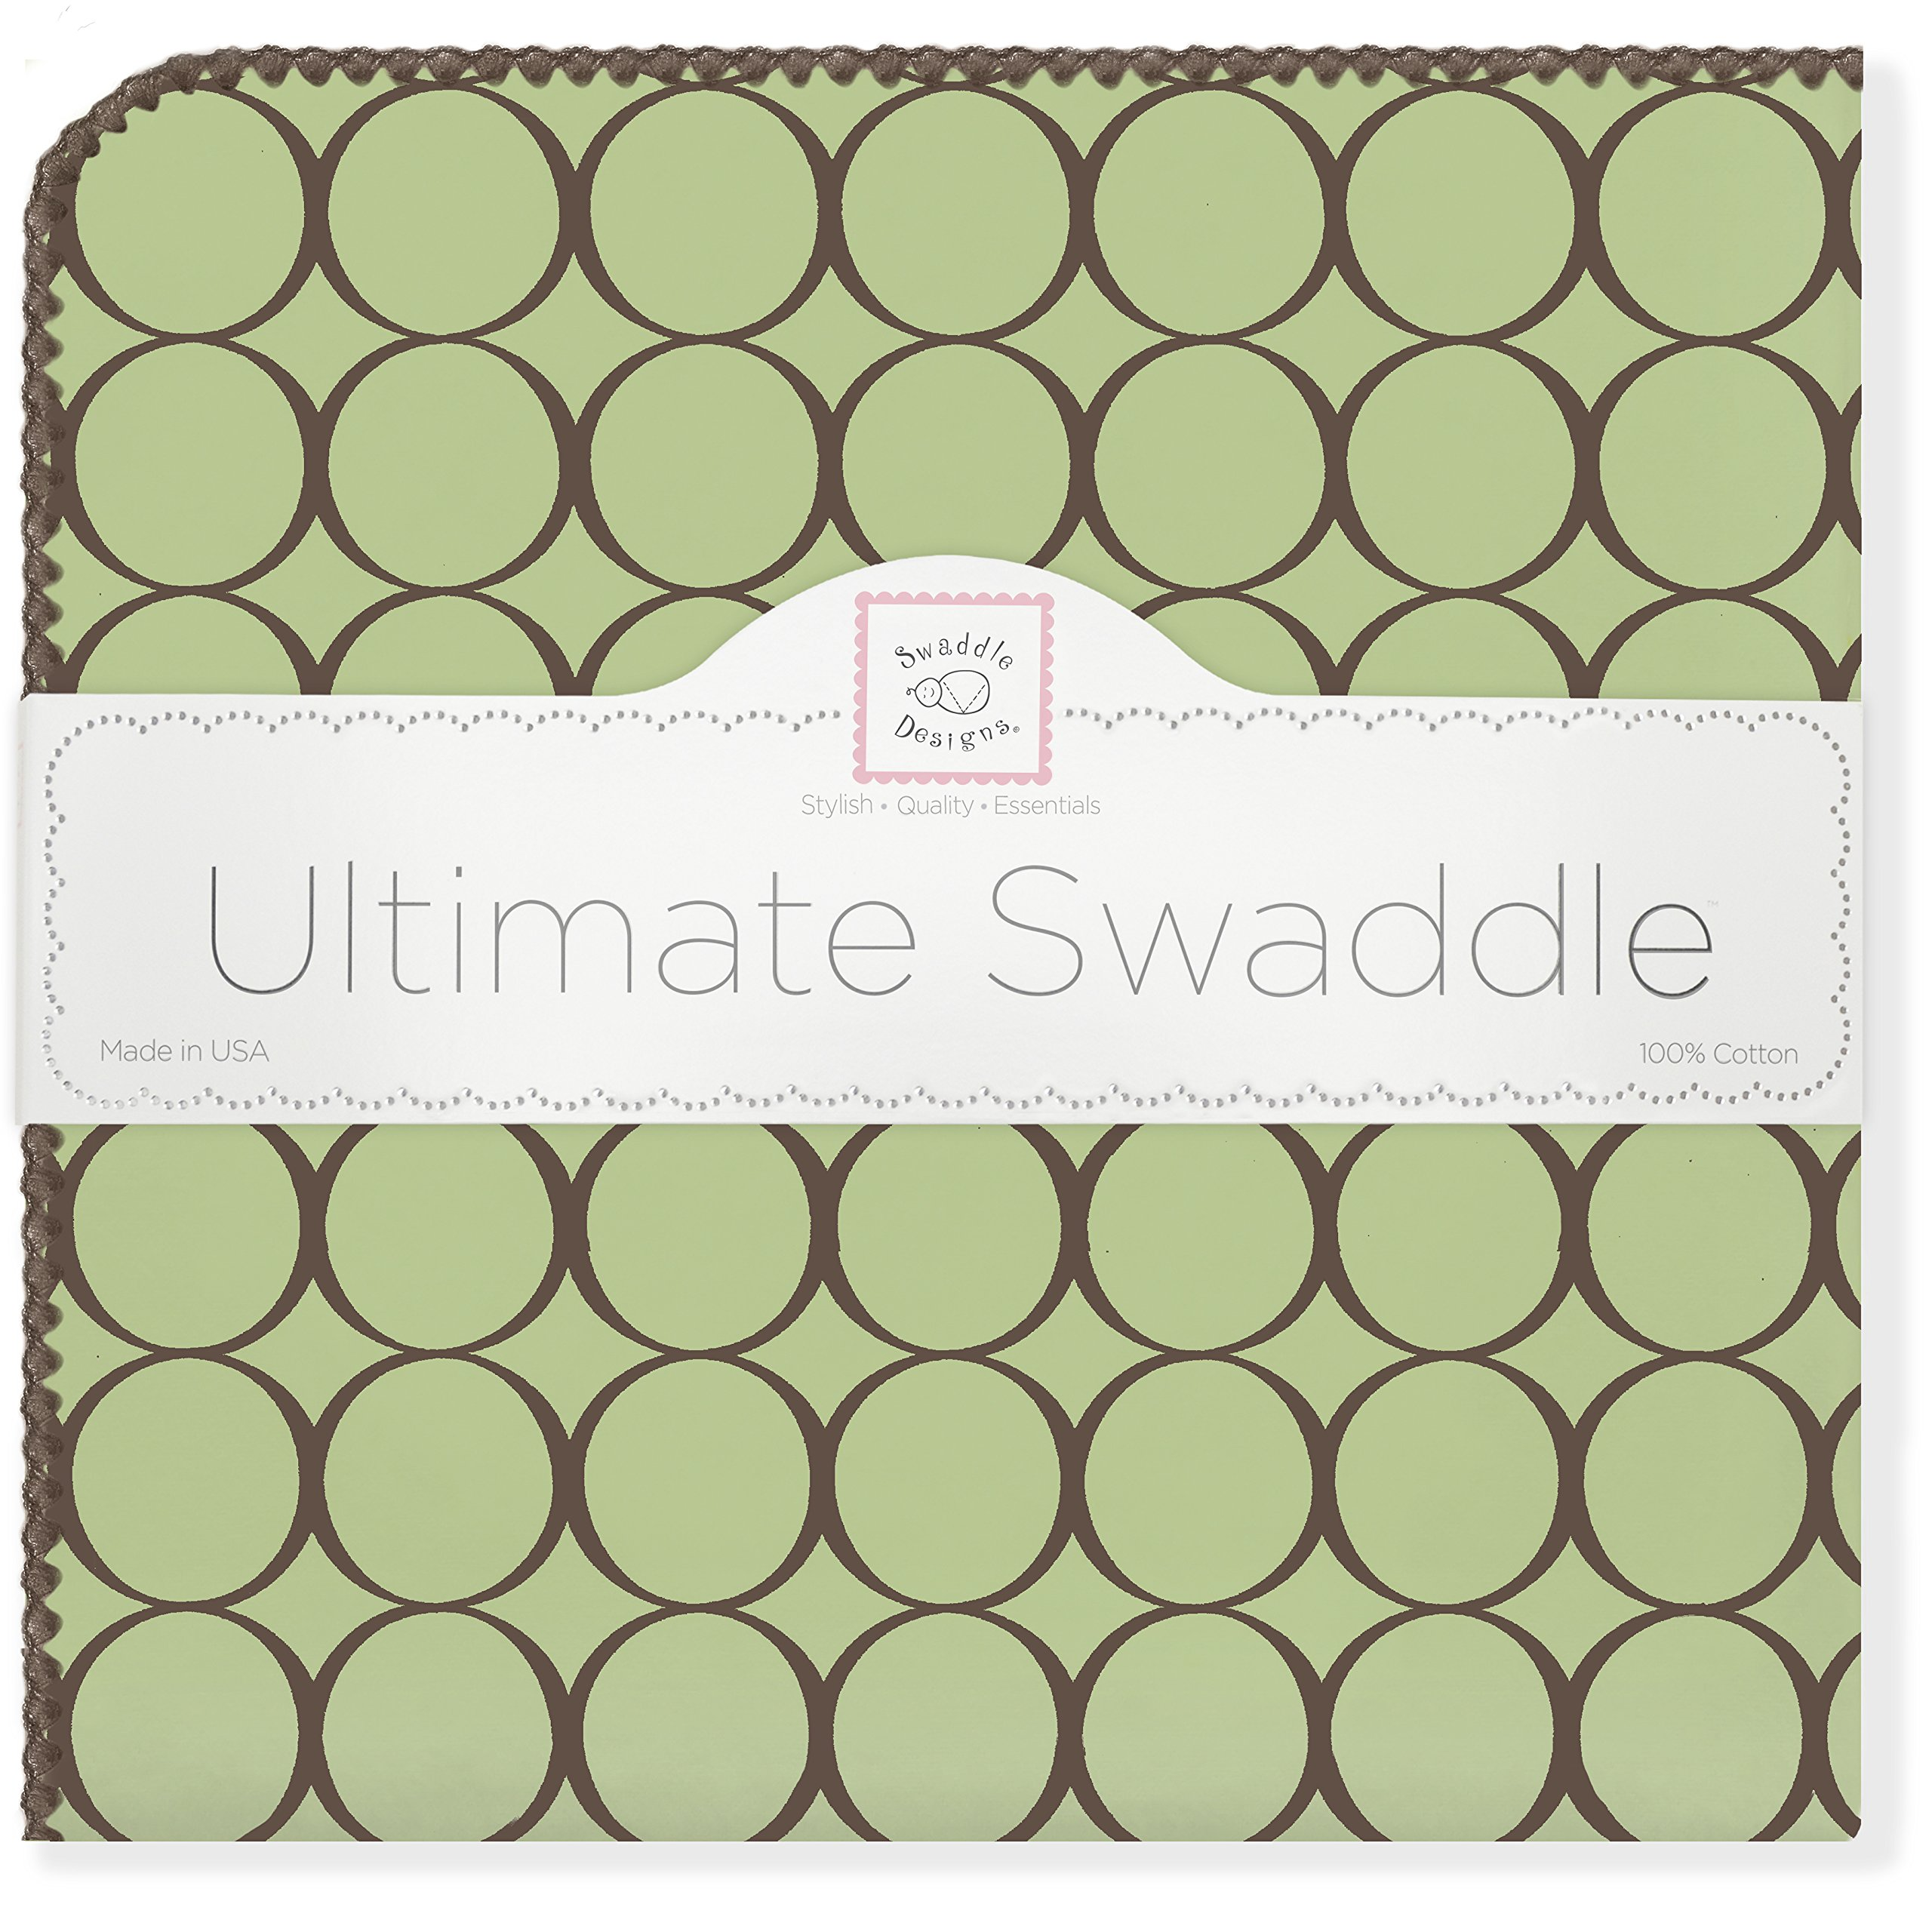 SwaddleDesigns Ultimate Swaddle Blanket, Made in USA, Premium Cotton Flannel, Brown Mod Circles on Lime